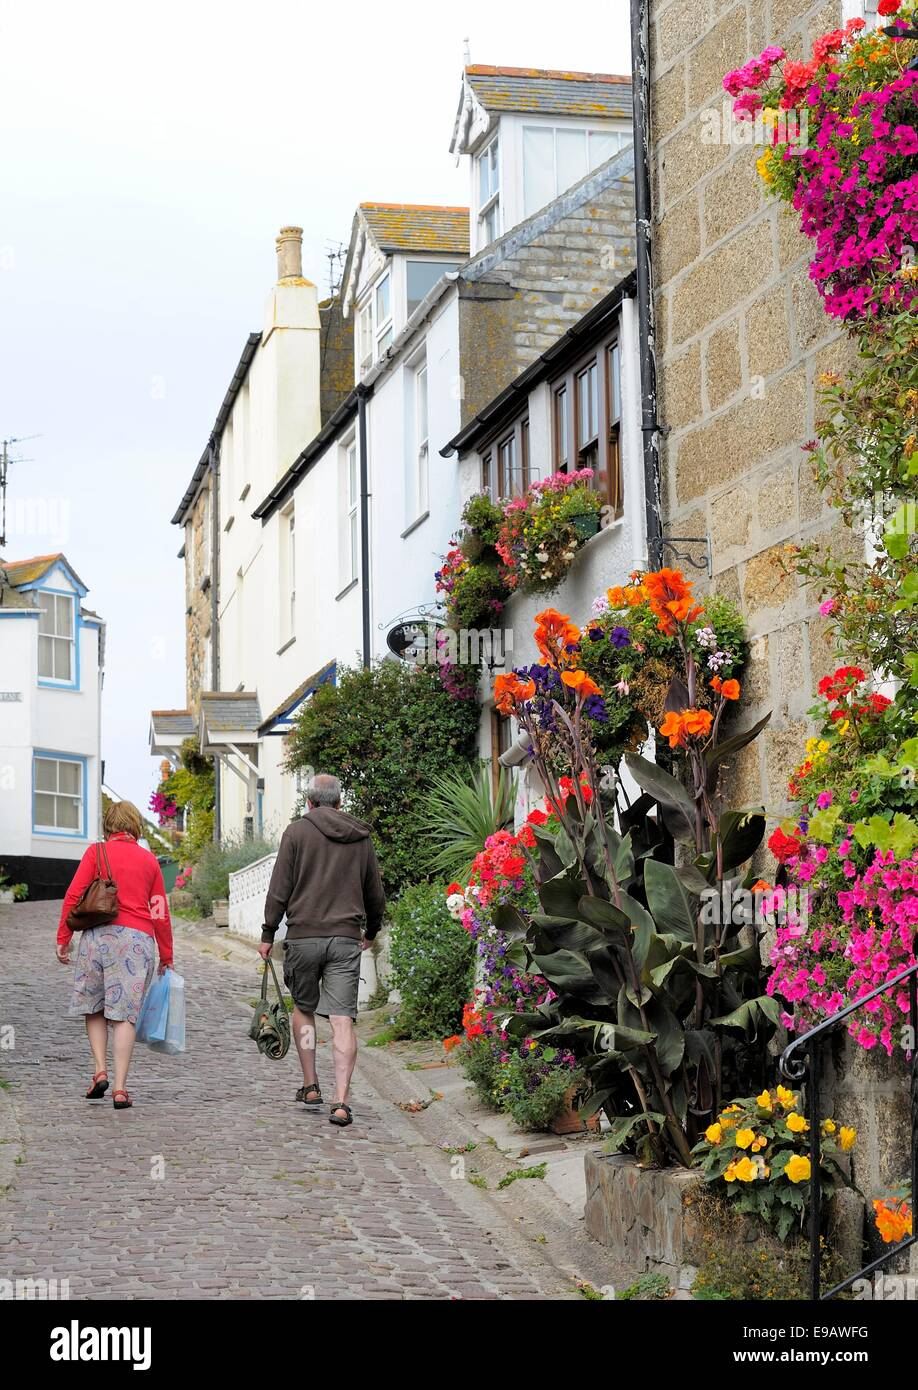 A man and a woman carrying bags walking up love lane St Ives Cornwall England uk - Stock Image